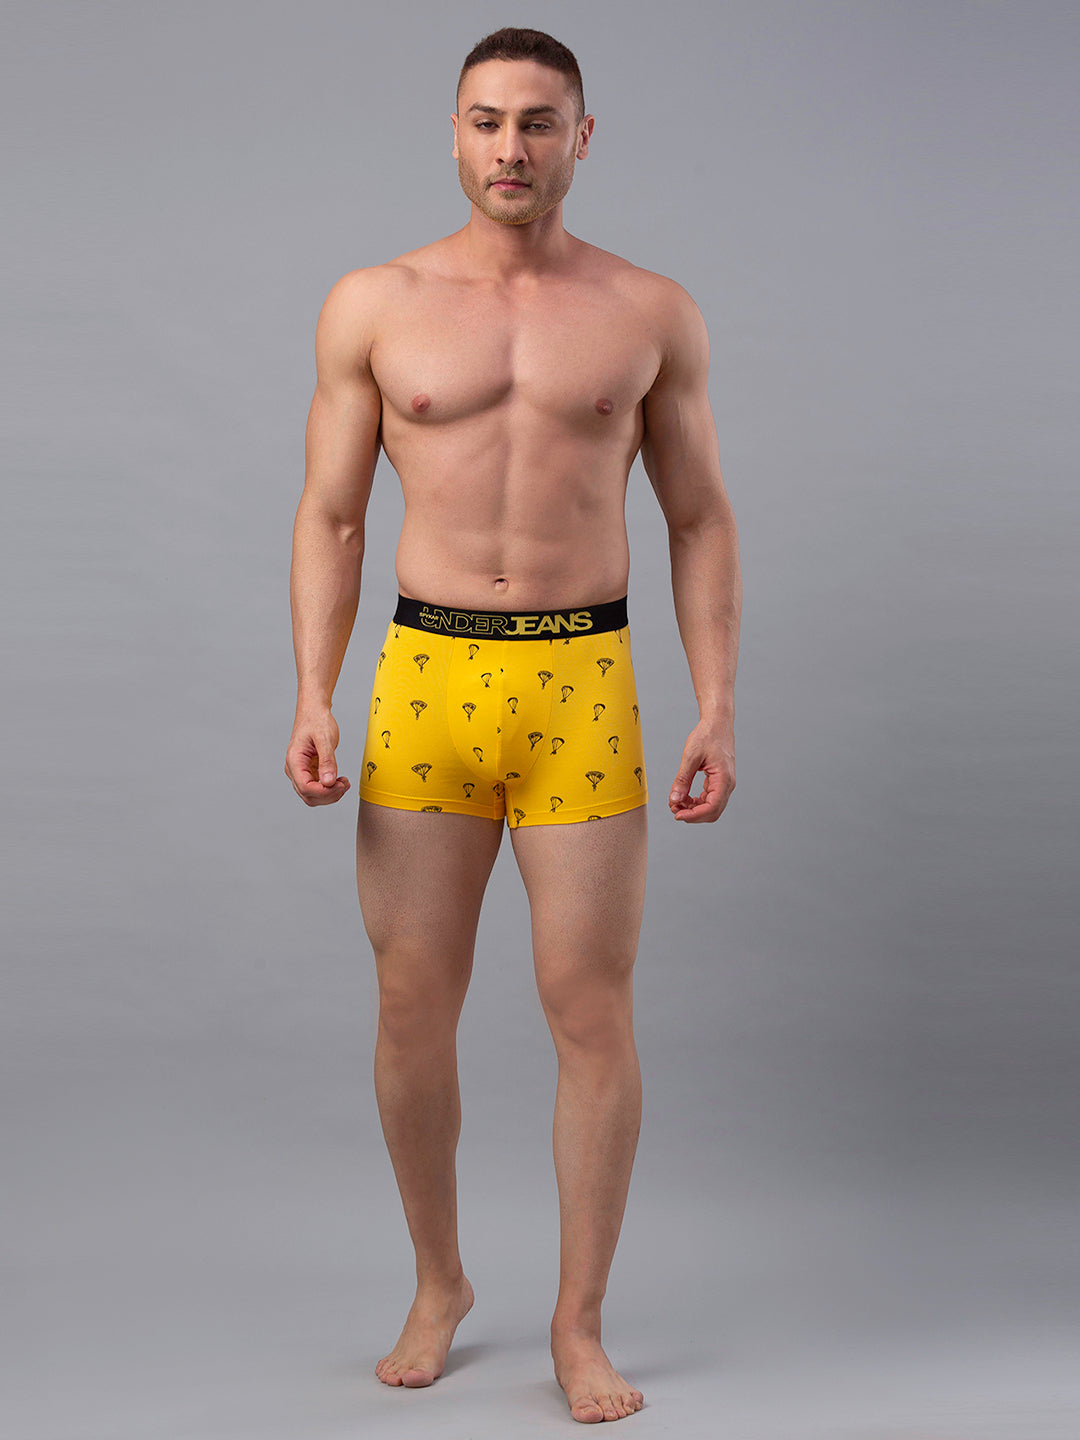 Underjeans Yellow Cotton Trunk - Pack of 2